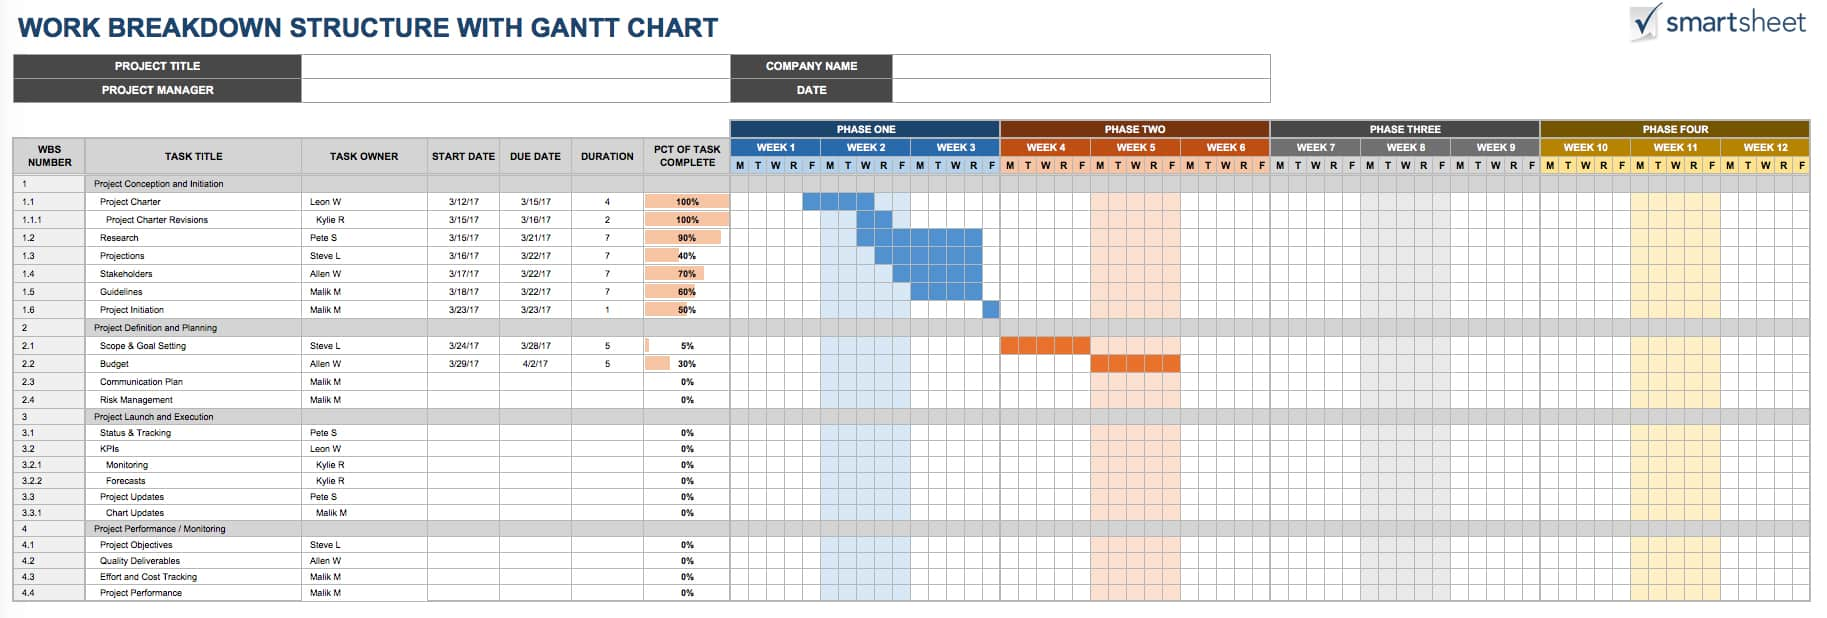 wbs templates excel